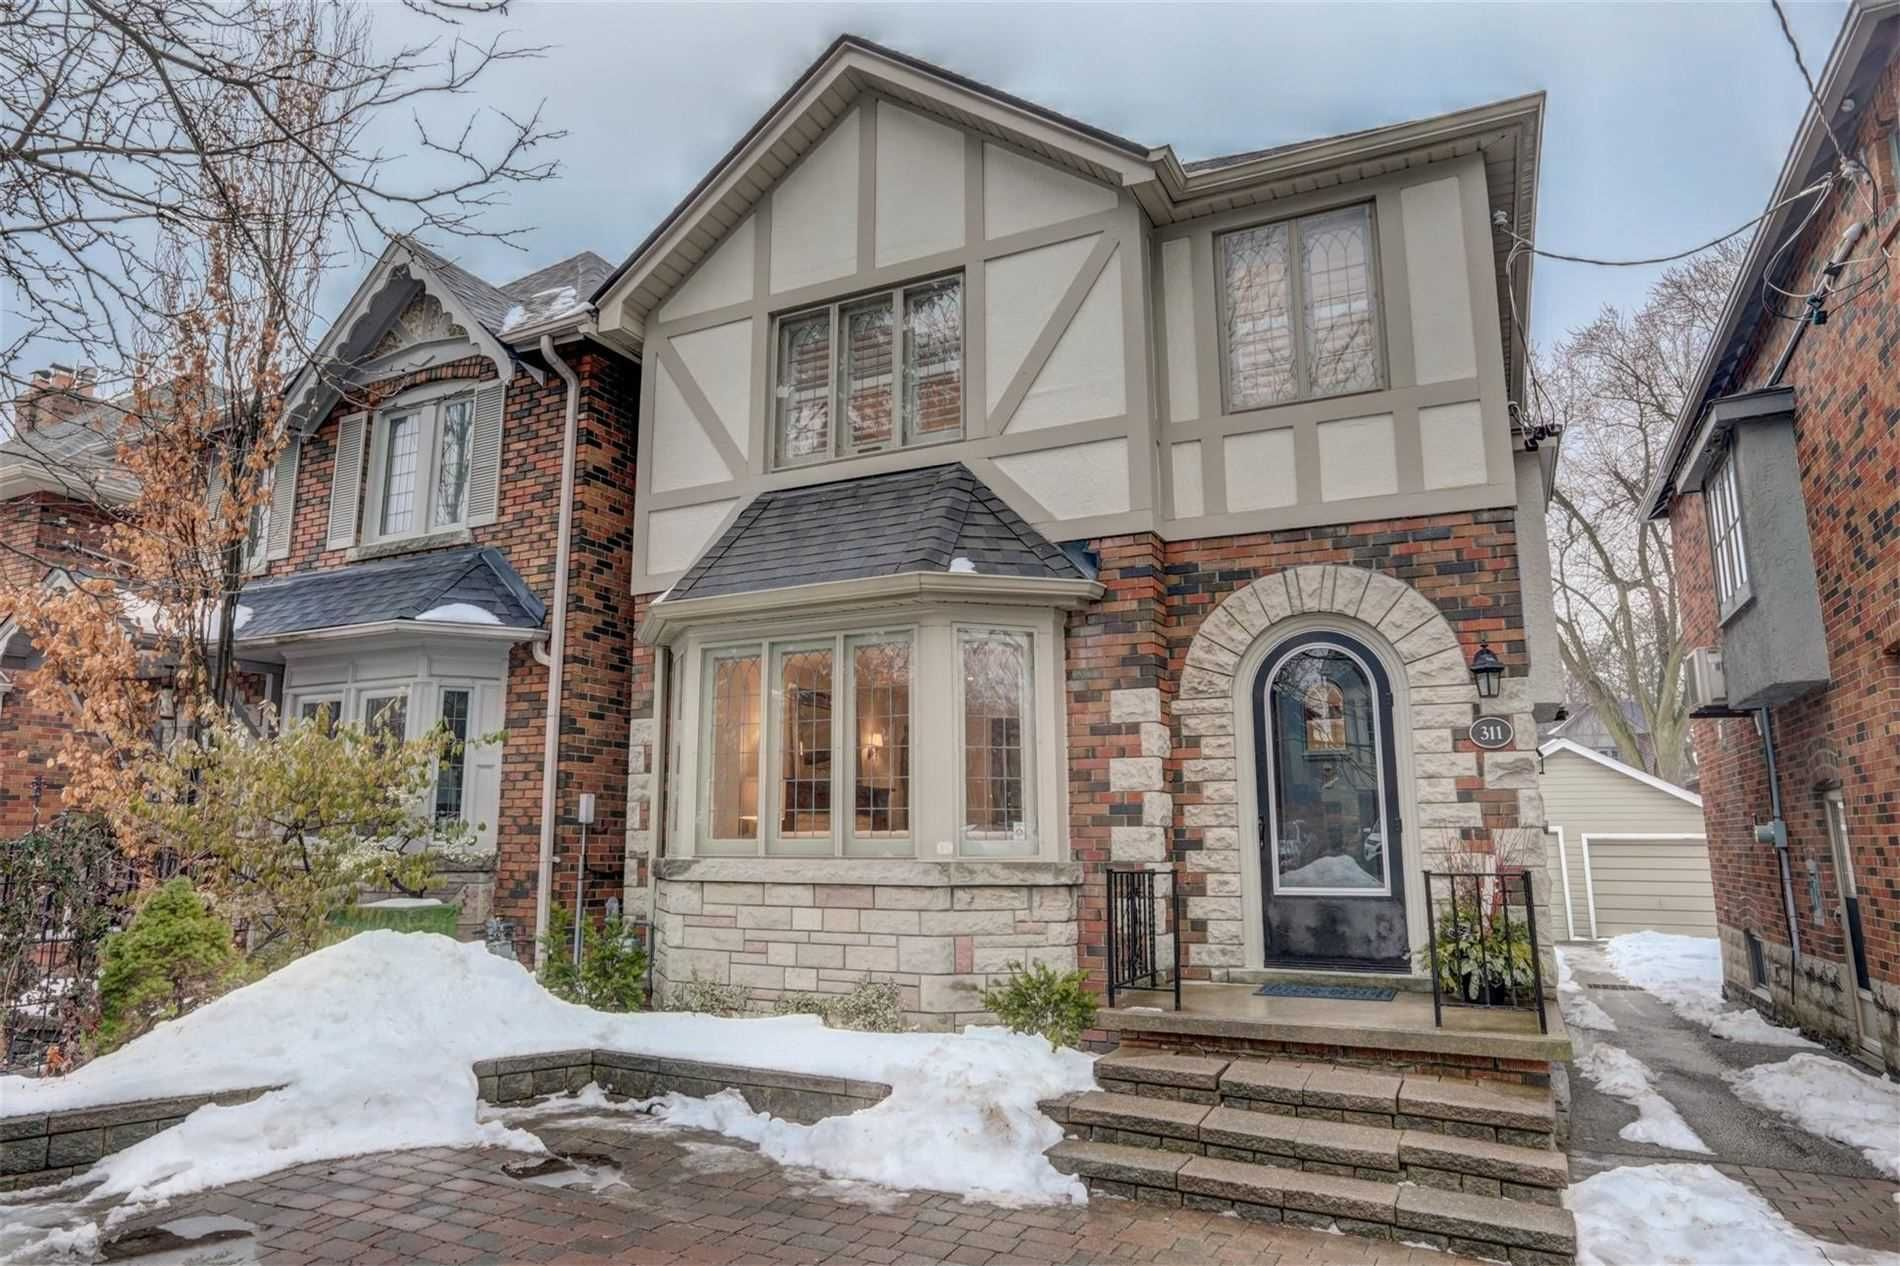 Main Photo: 311 Fairlawn Avenue in Toronto: Lawrence Park North House (2-Storey) for sale (Toronto C04)  : MLS®# C4709438